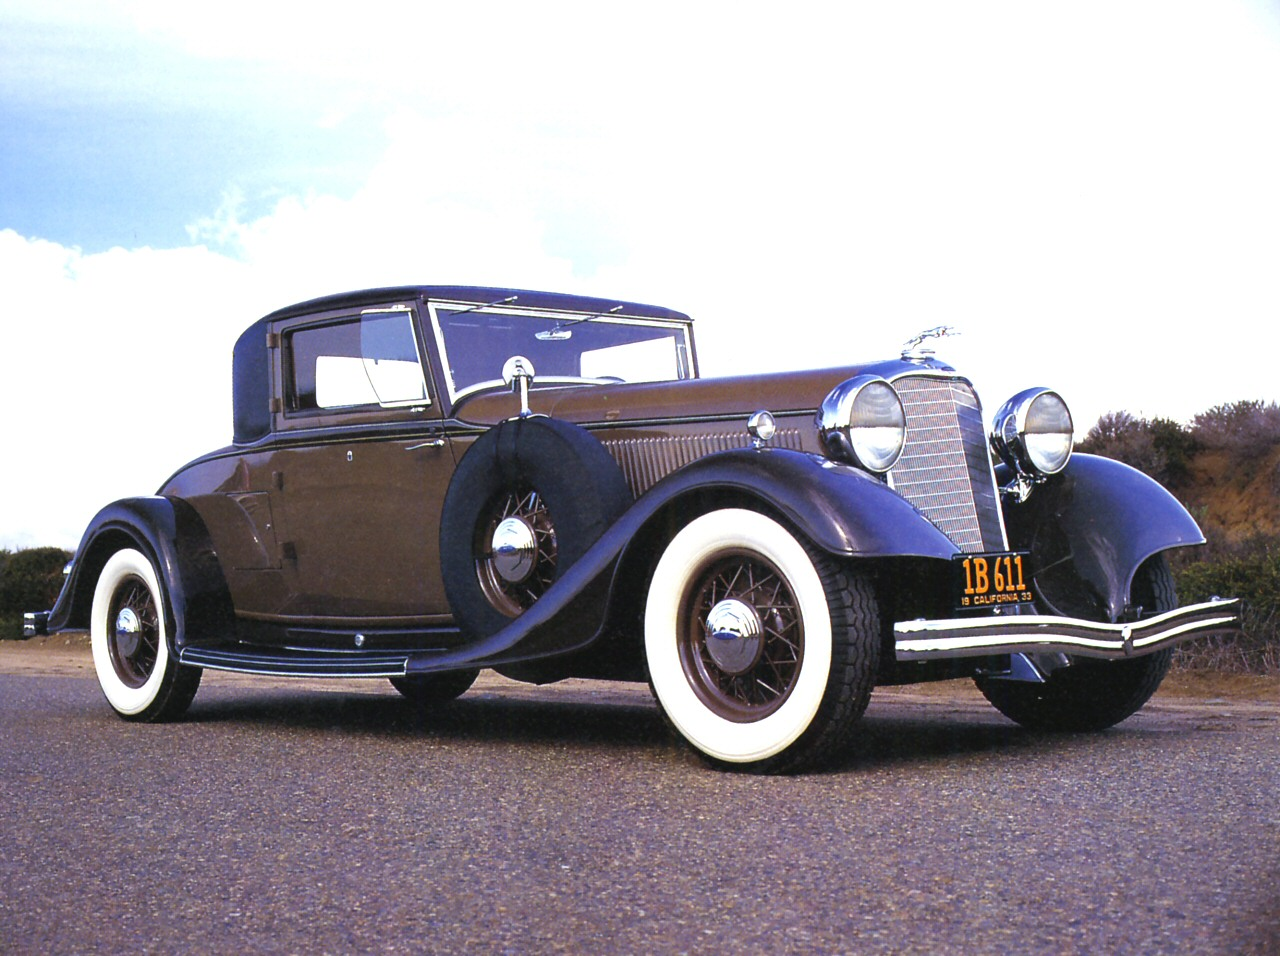 1933 lincoln kb v 12 3 window coupe brown fvr cars wallpaper for 1933 3 window coupe